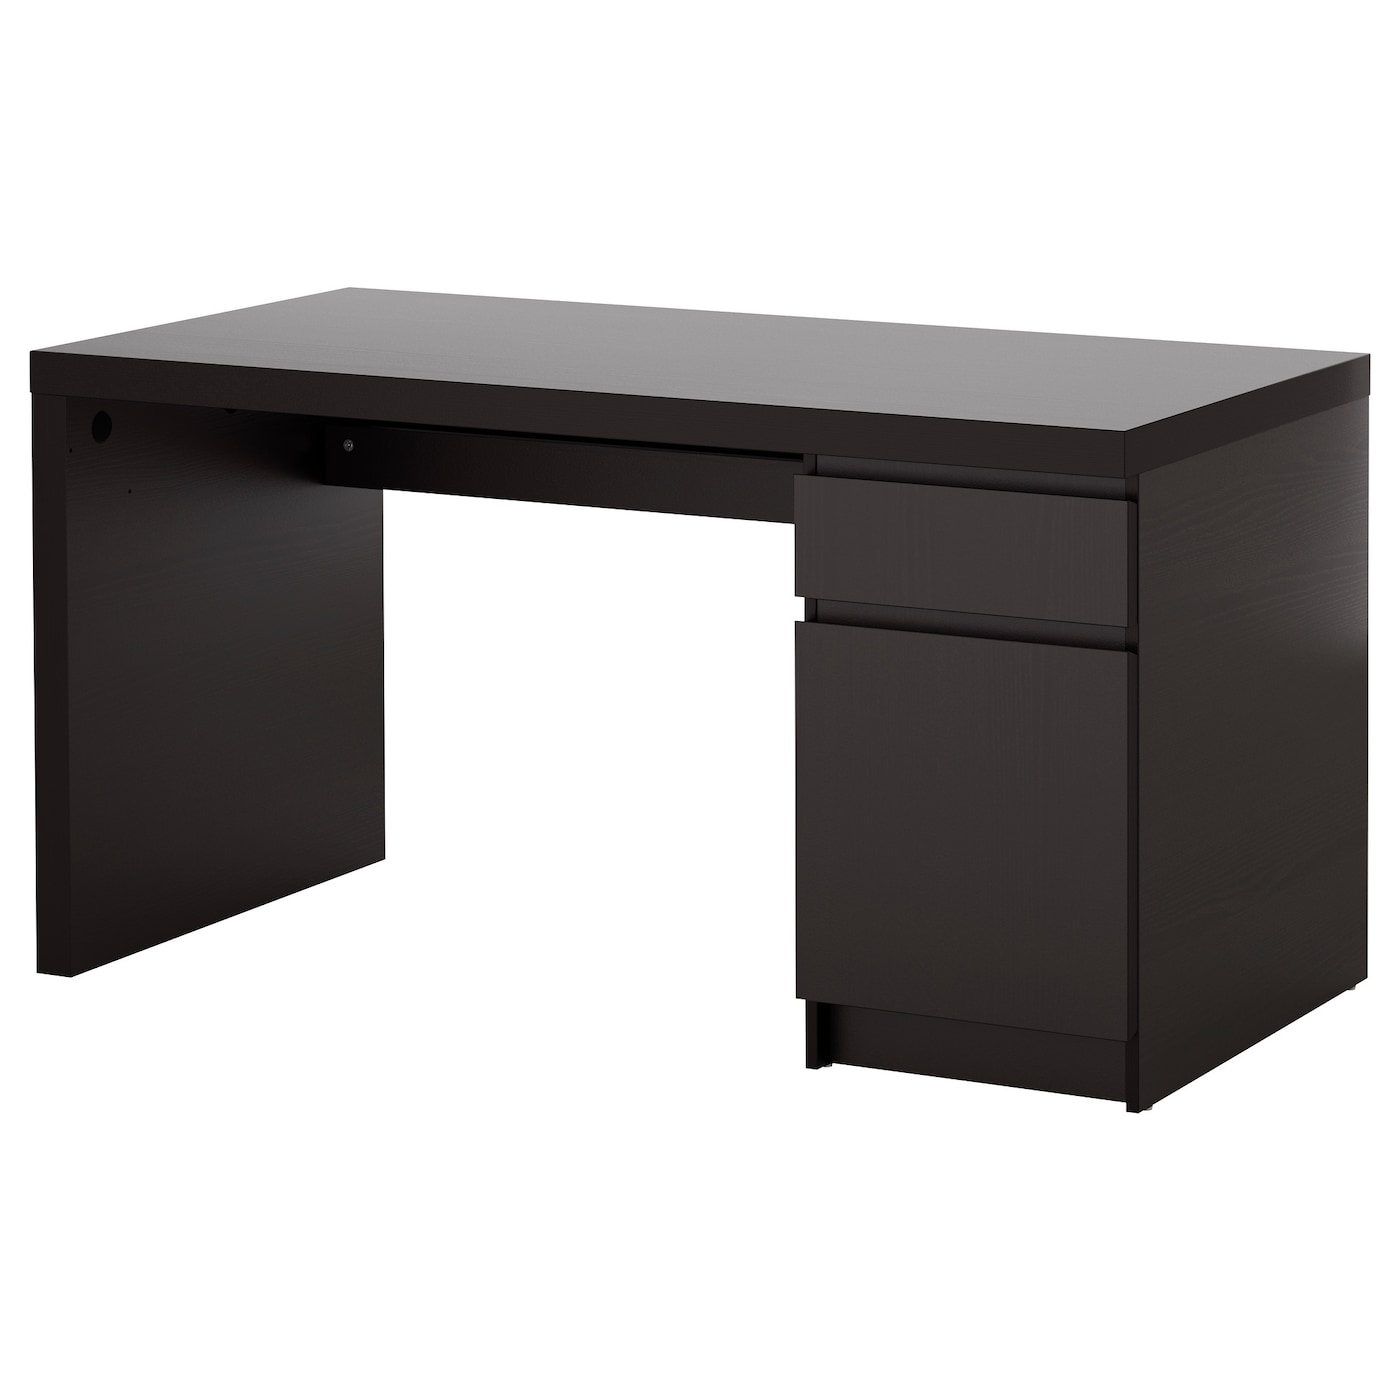 malm desk black brown 140x65 cm ikea. Black Bedroom Furniture Sets. Home Design Ideas